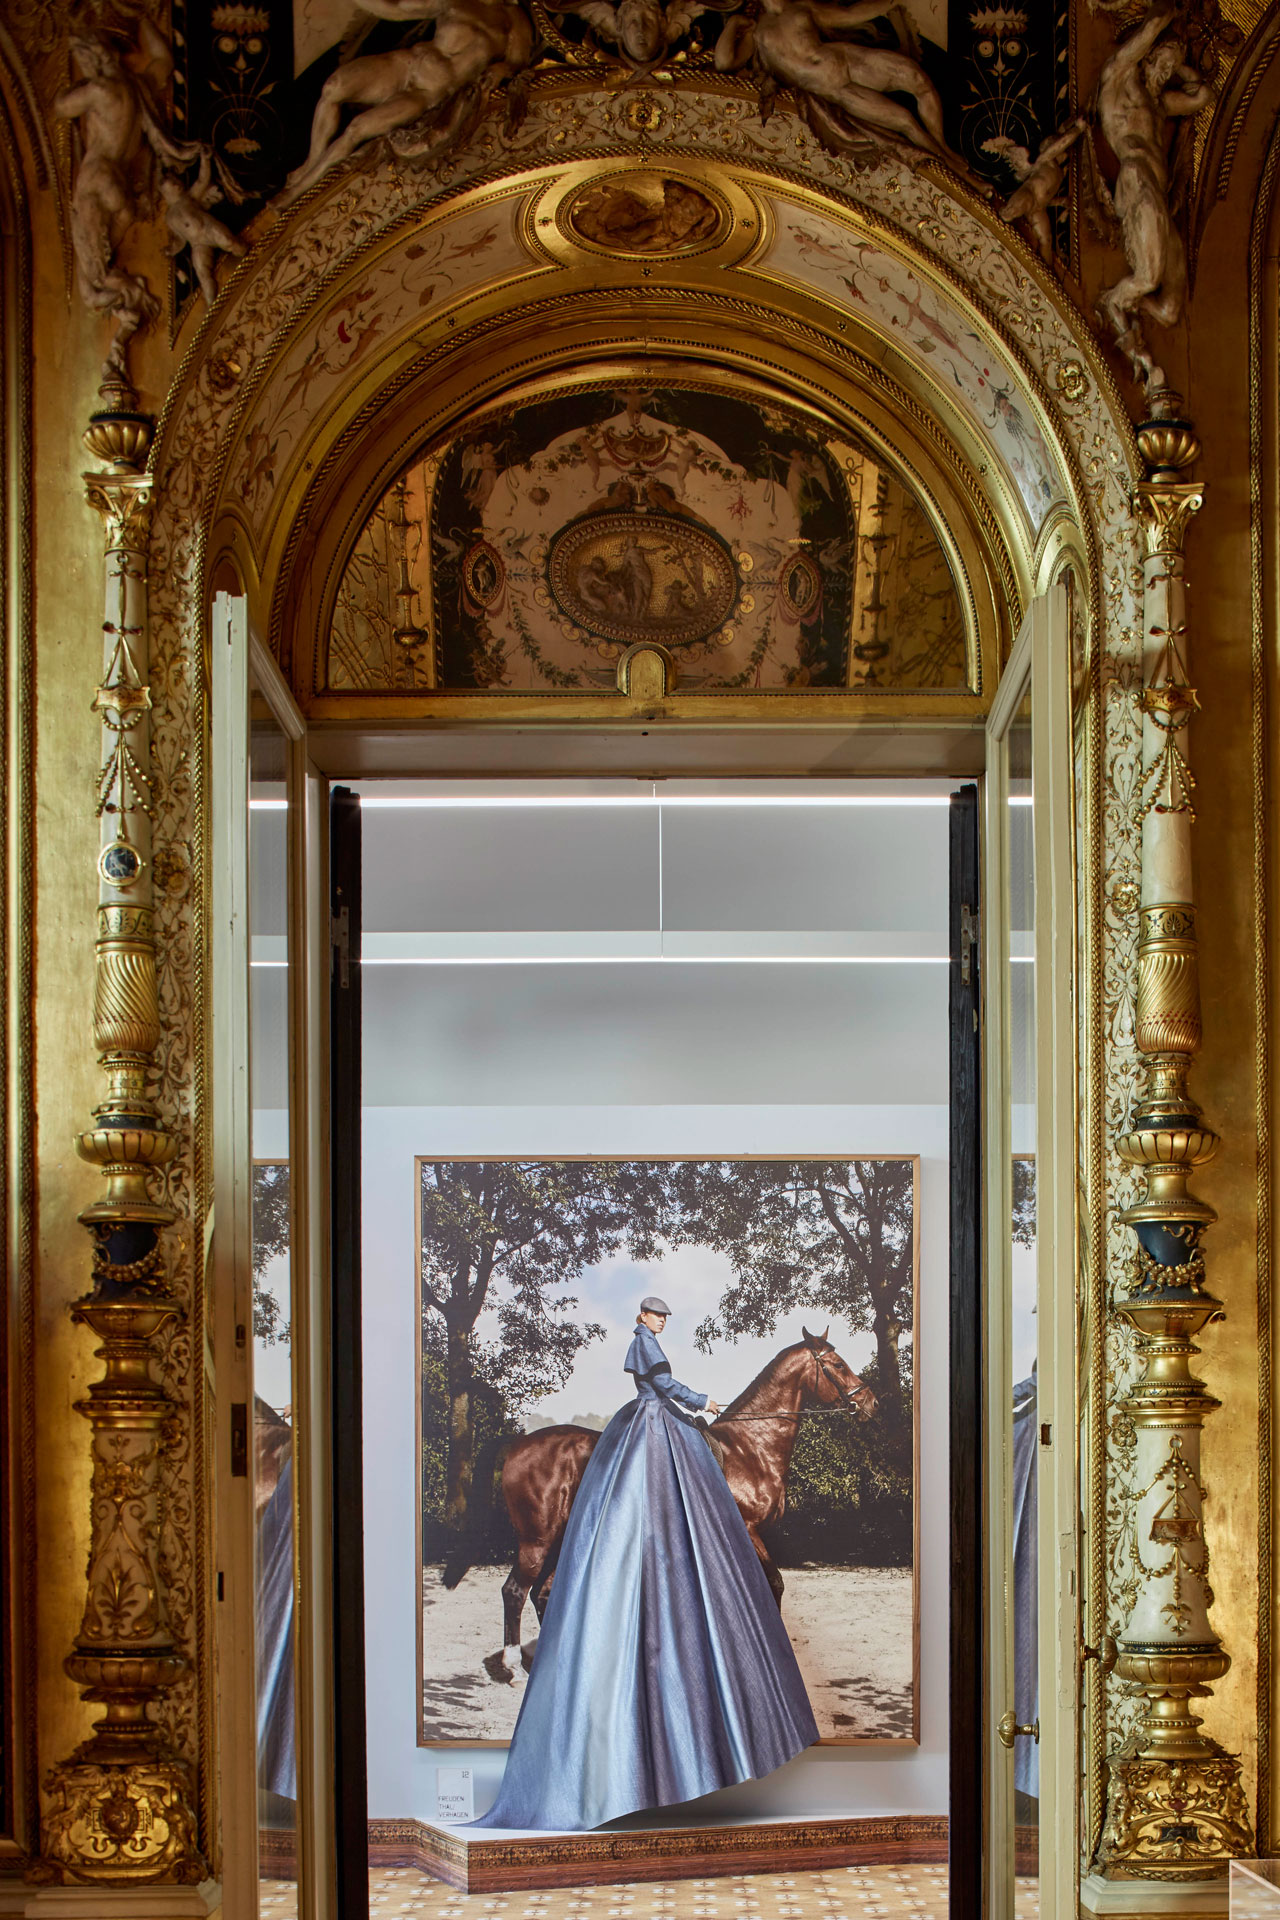 Artwork from the BLUE JEANS seriesby Freudenthal/Verhagen,a Dutch photography duo based in Amsterdam(Carmen Freudenthal & Elle Verhagen) as seen inside Palazzo Francesco Turati at the 2017 edition ofMASTERLY: THE DUTCH IN MILANexhibition.©Centraal Museum, Utrecht. Photo by Nicole Marnati.